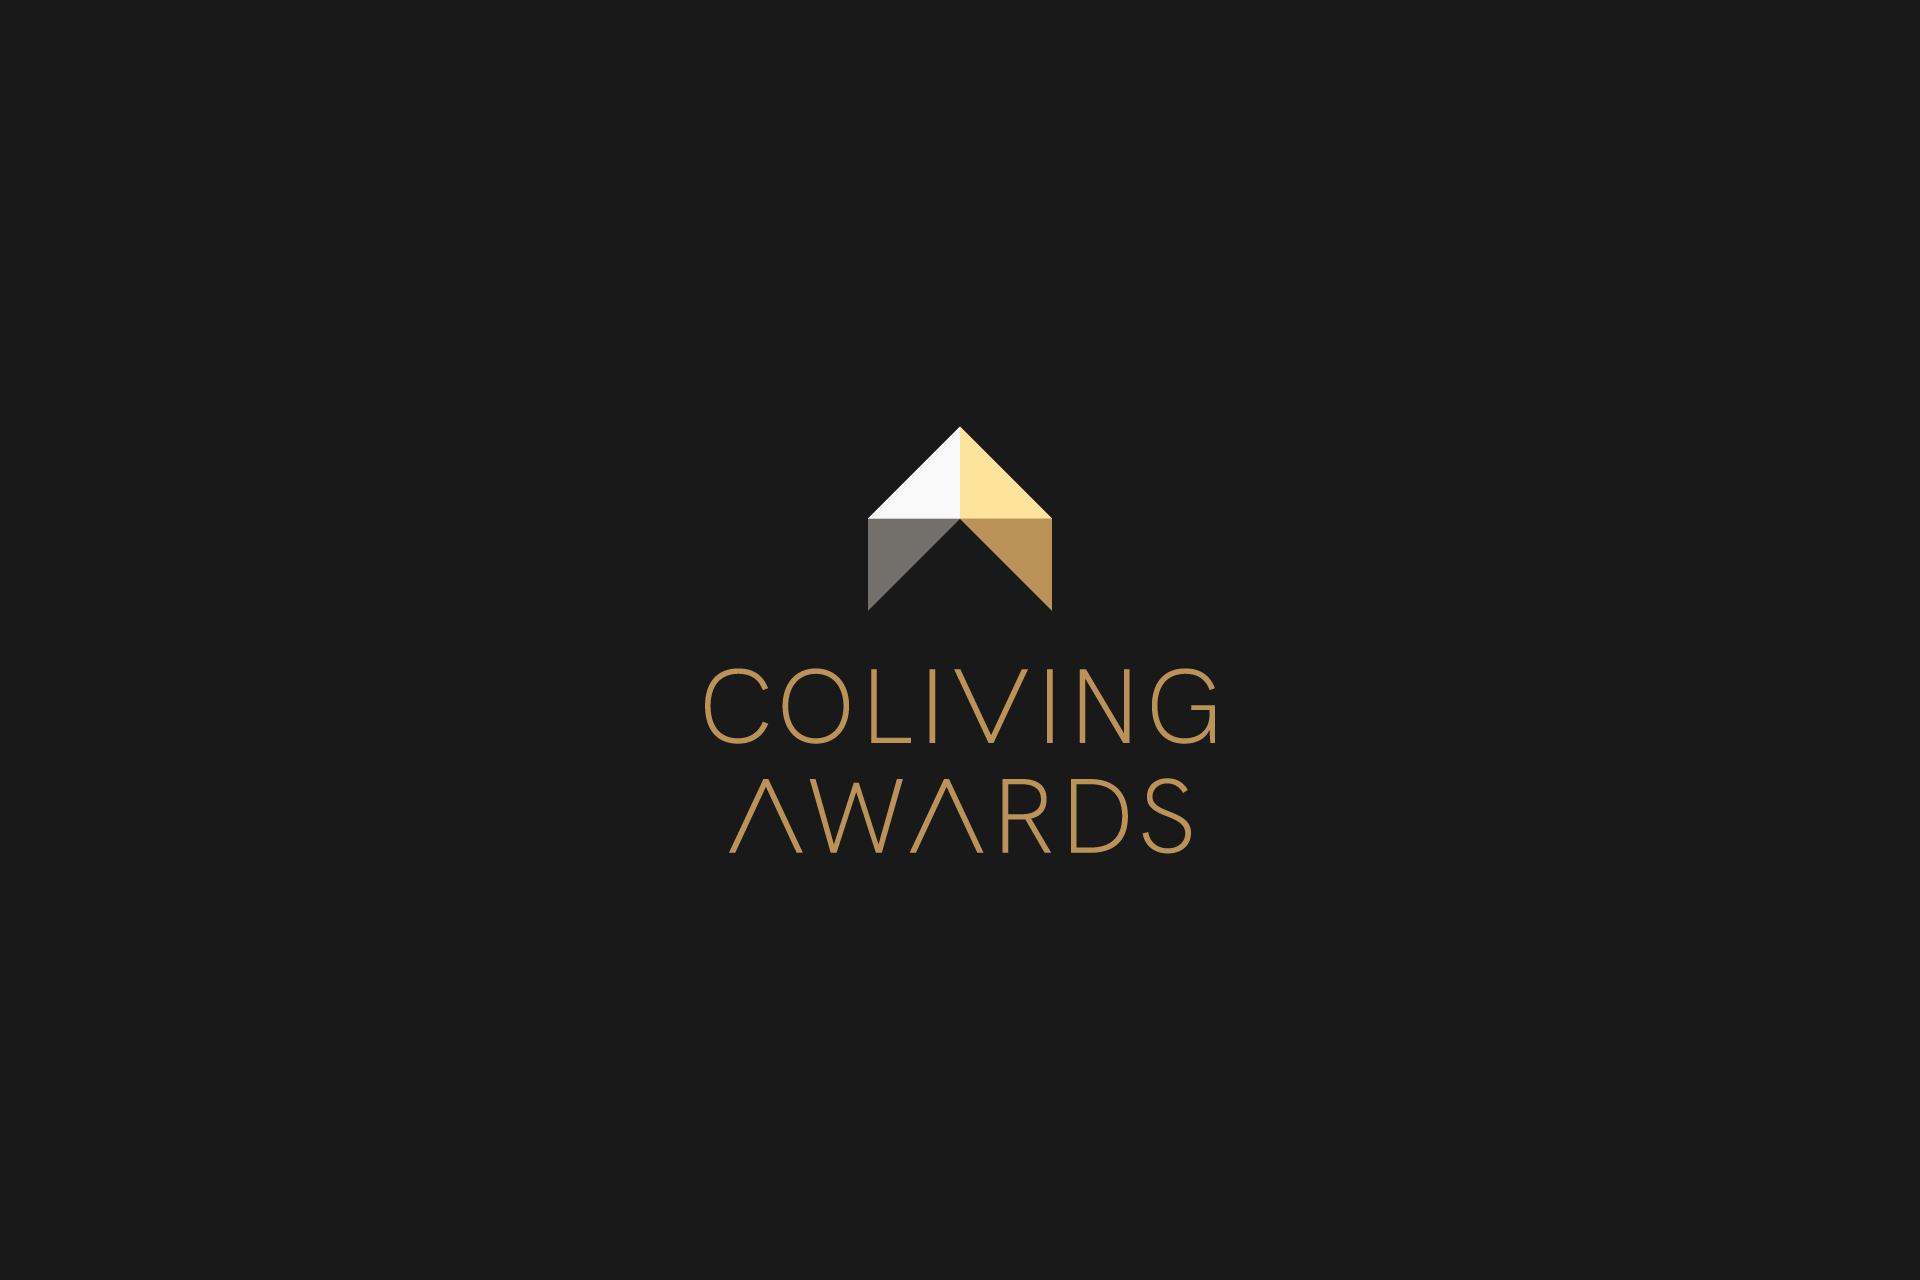 Coliving Awards logotype with dark background